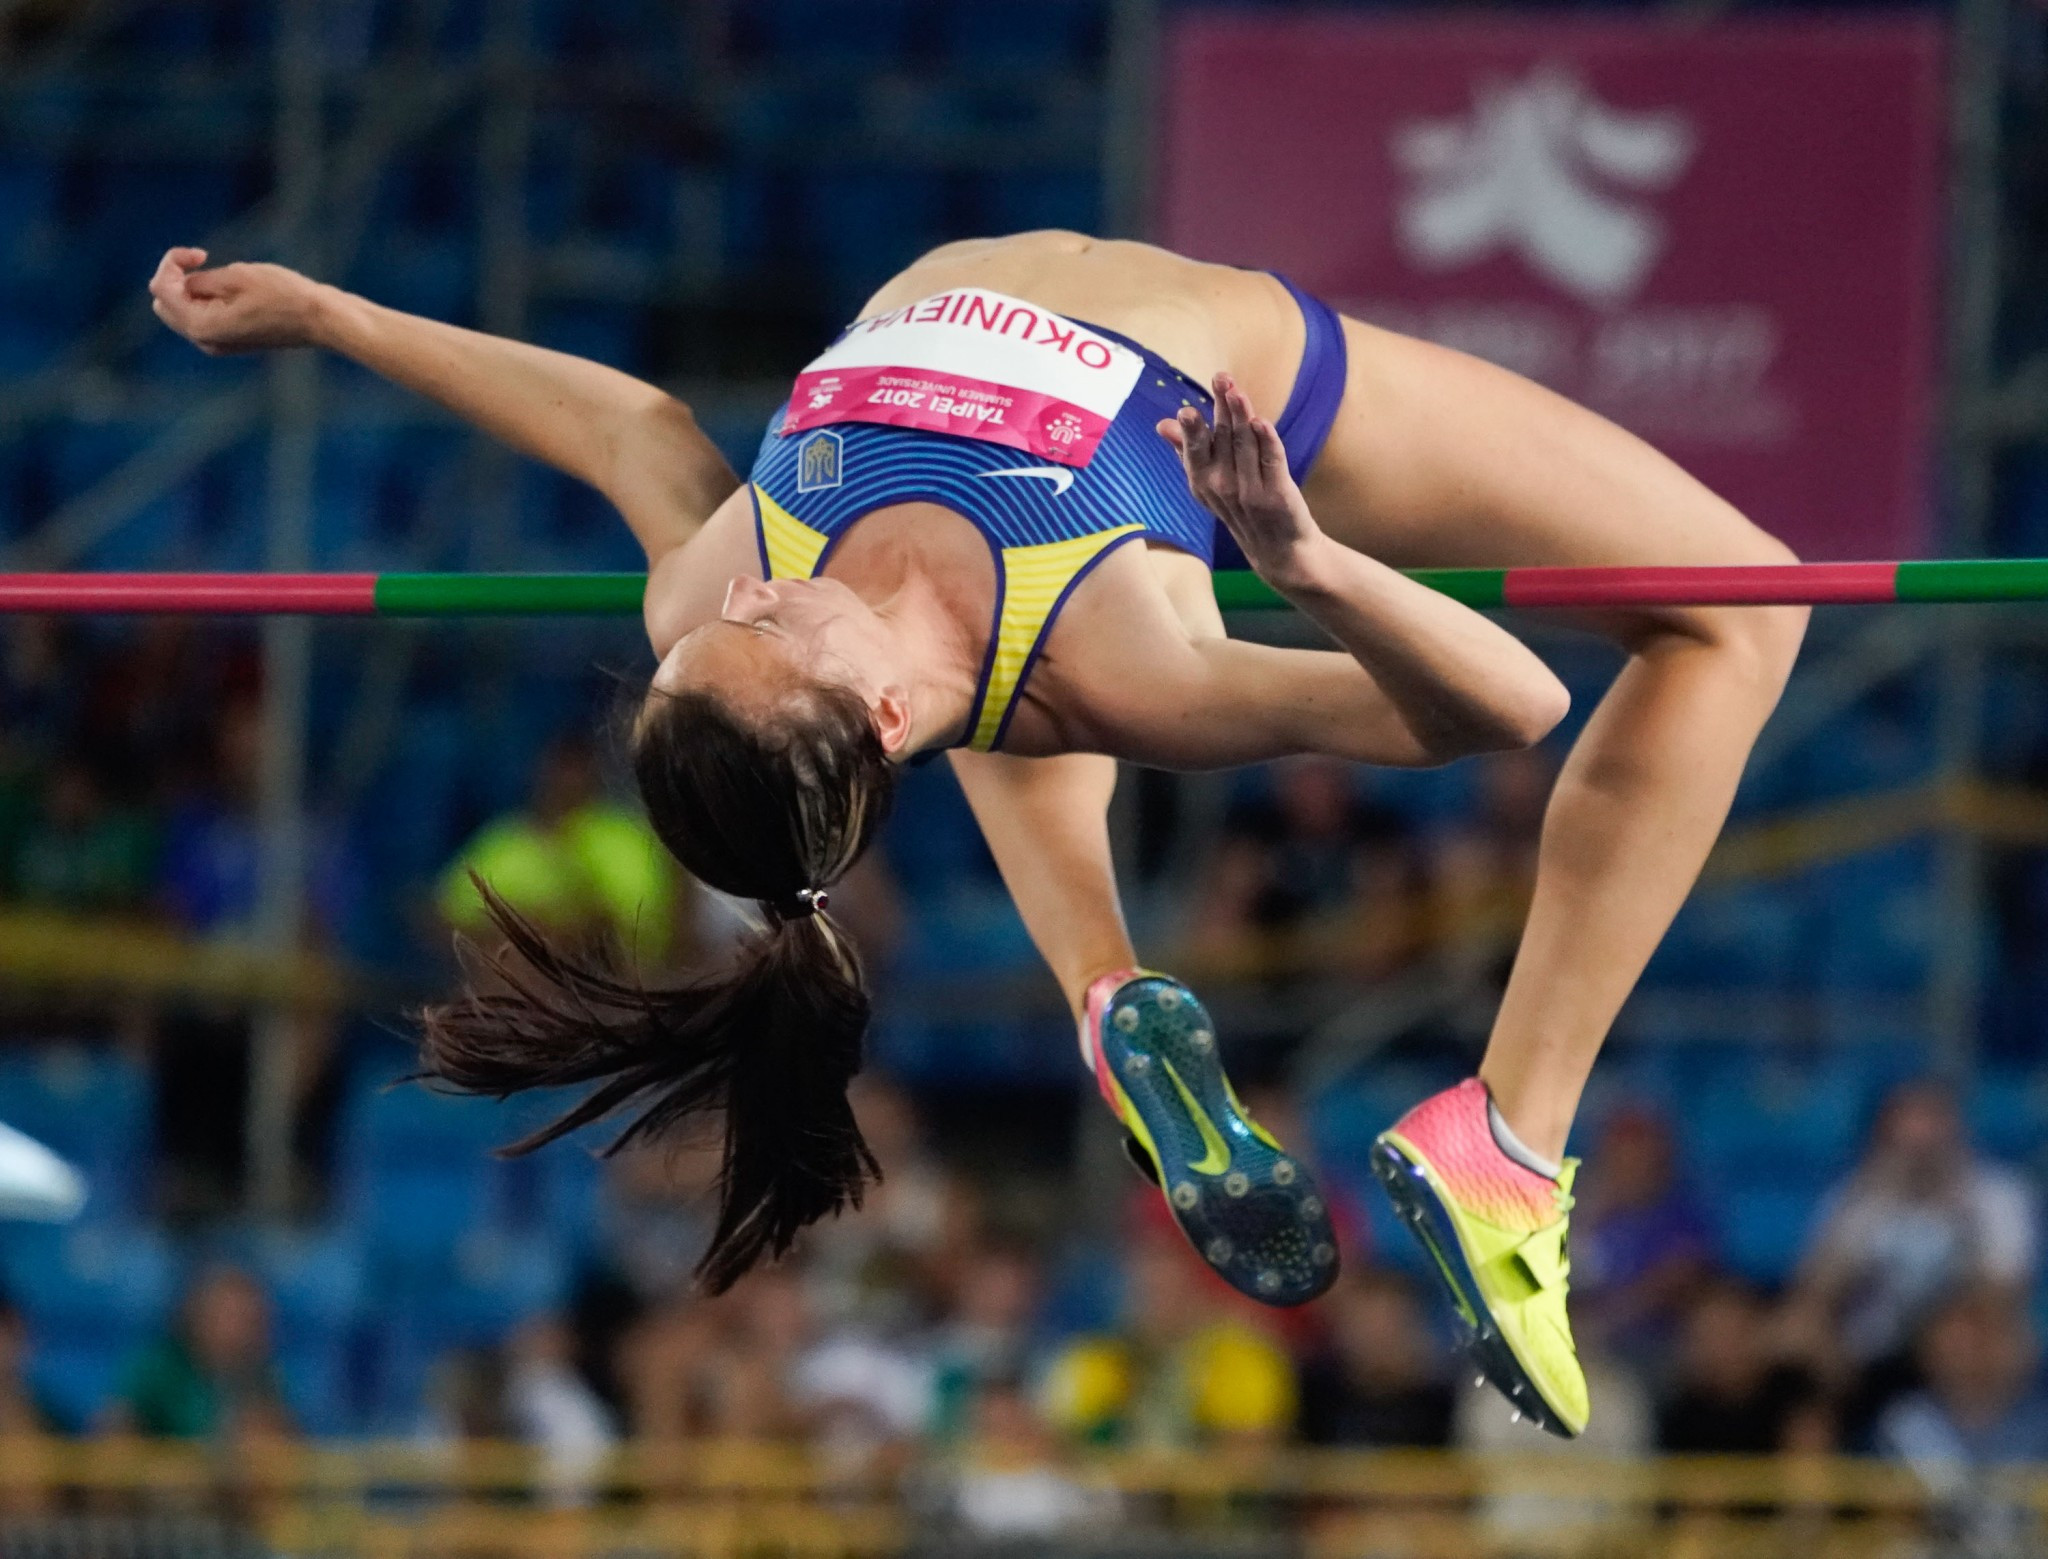 Ukraine earned gold and silver in the women's high jump competition ©Taipei 2017